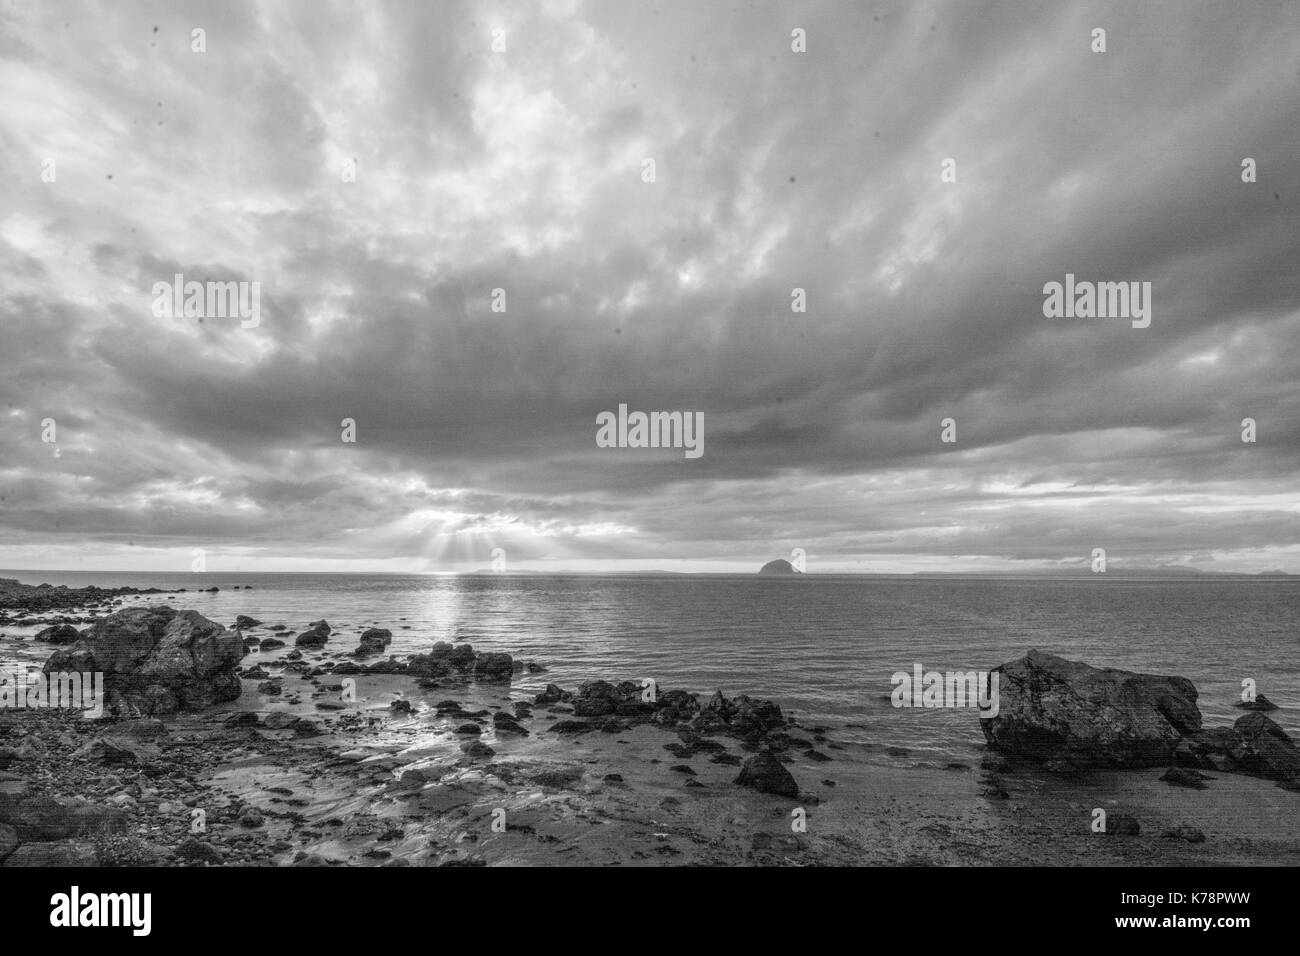 Seascape views over the beach and sea at Lendalfoot near Girvan, Scotland - Stock Image